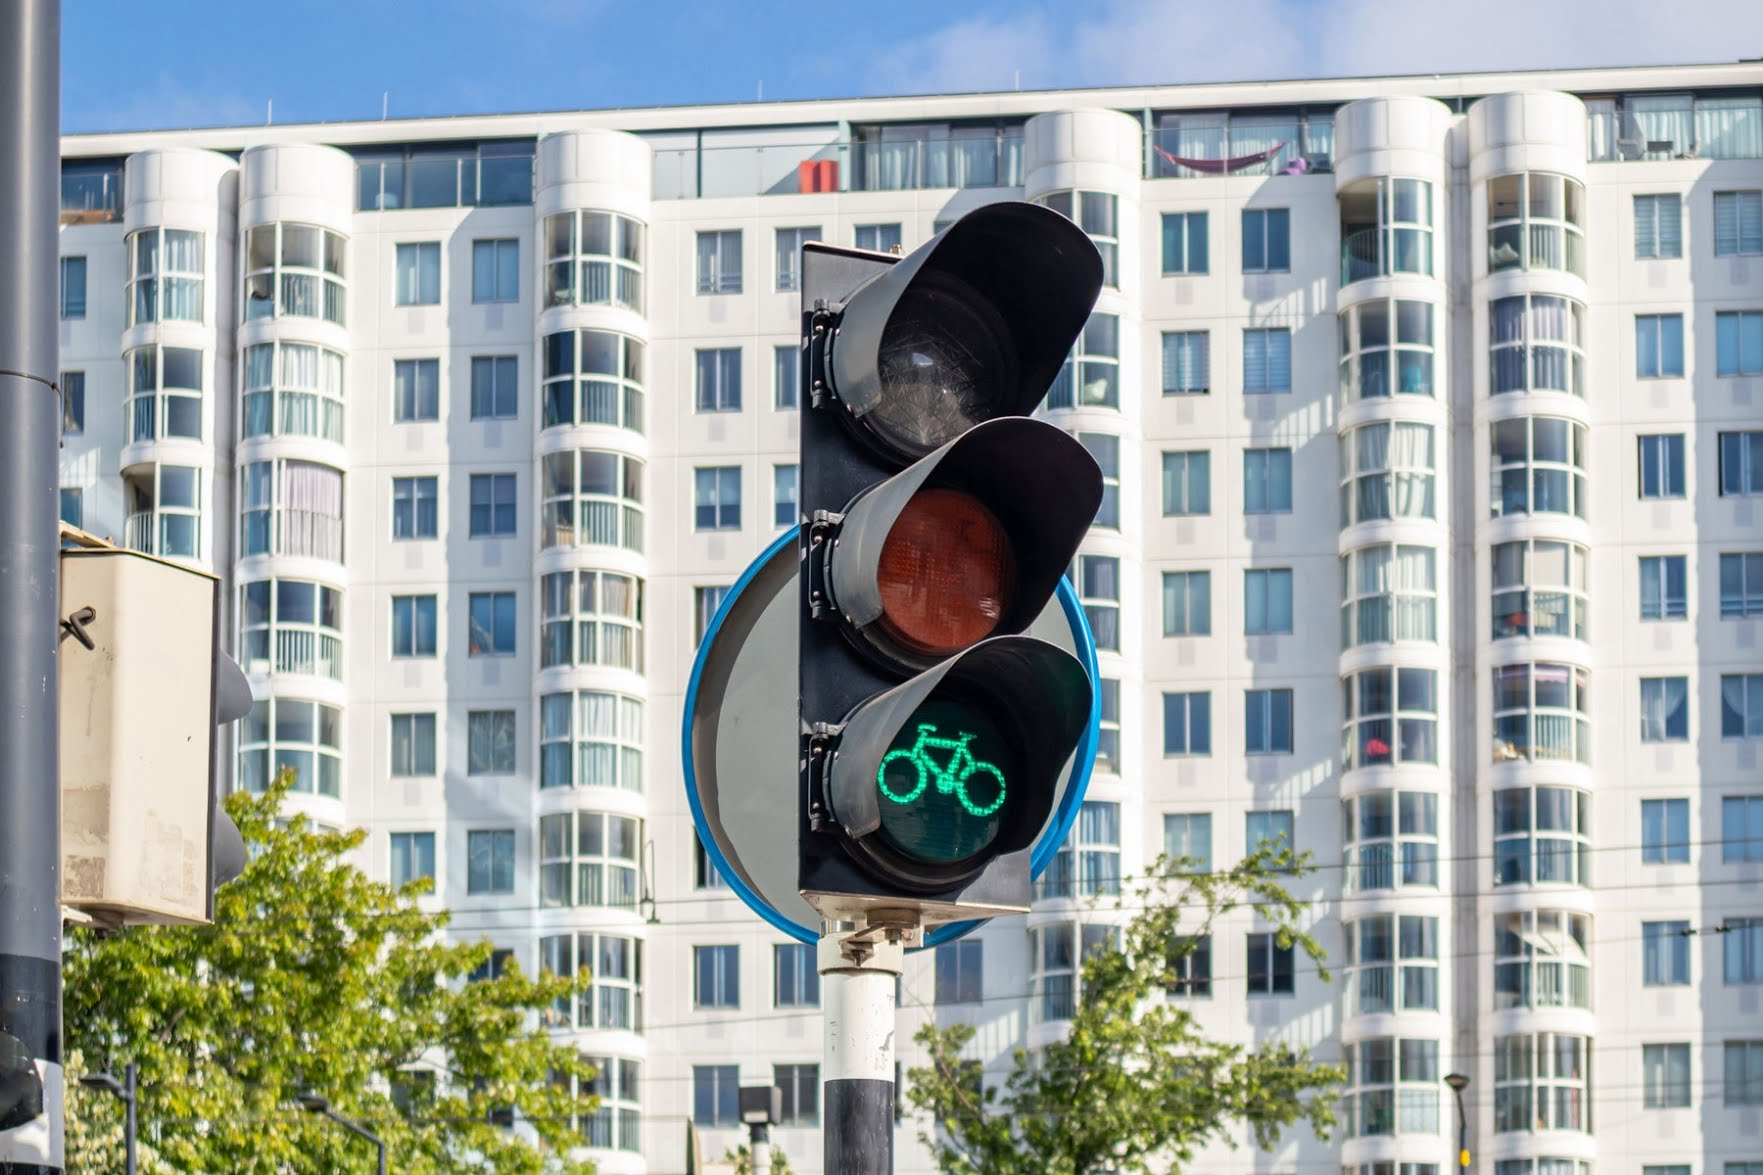 Dutch Hackers Found A Simple Way To Mess With Traffic Lights